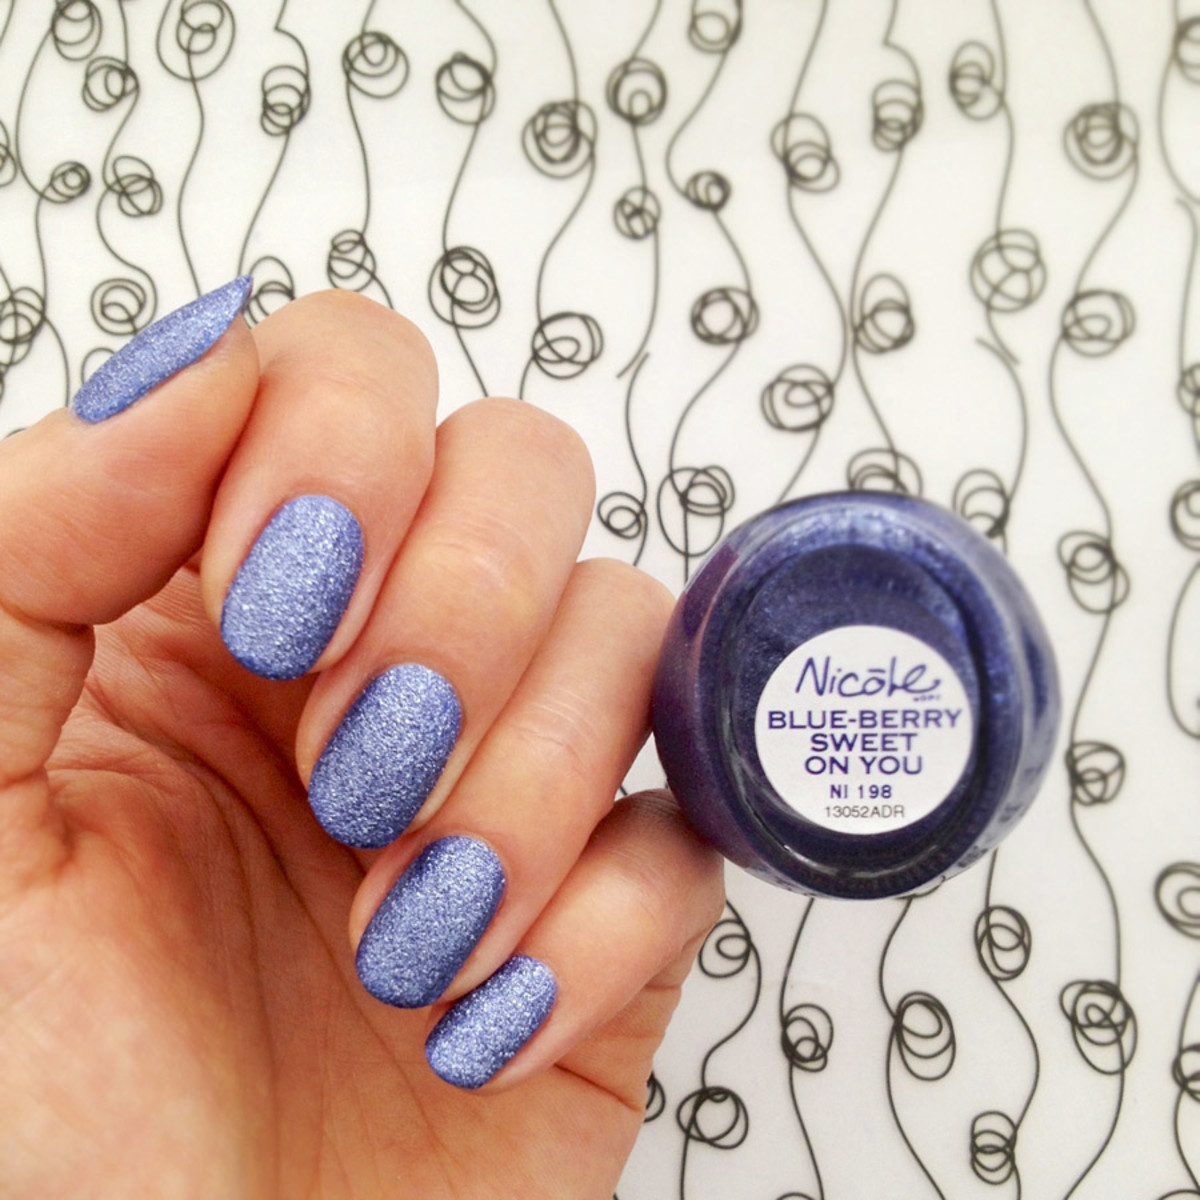 Nicole by OPI in Blue-Berry Sweet On You